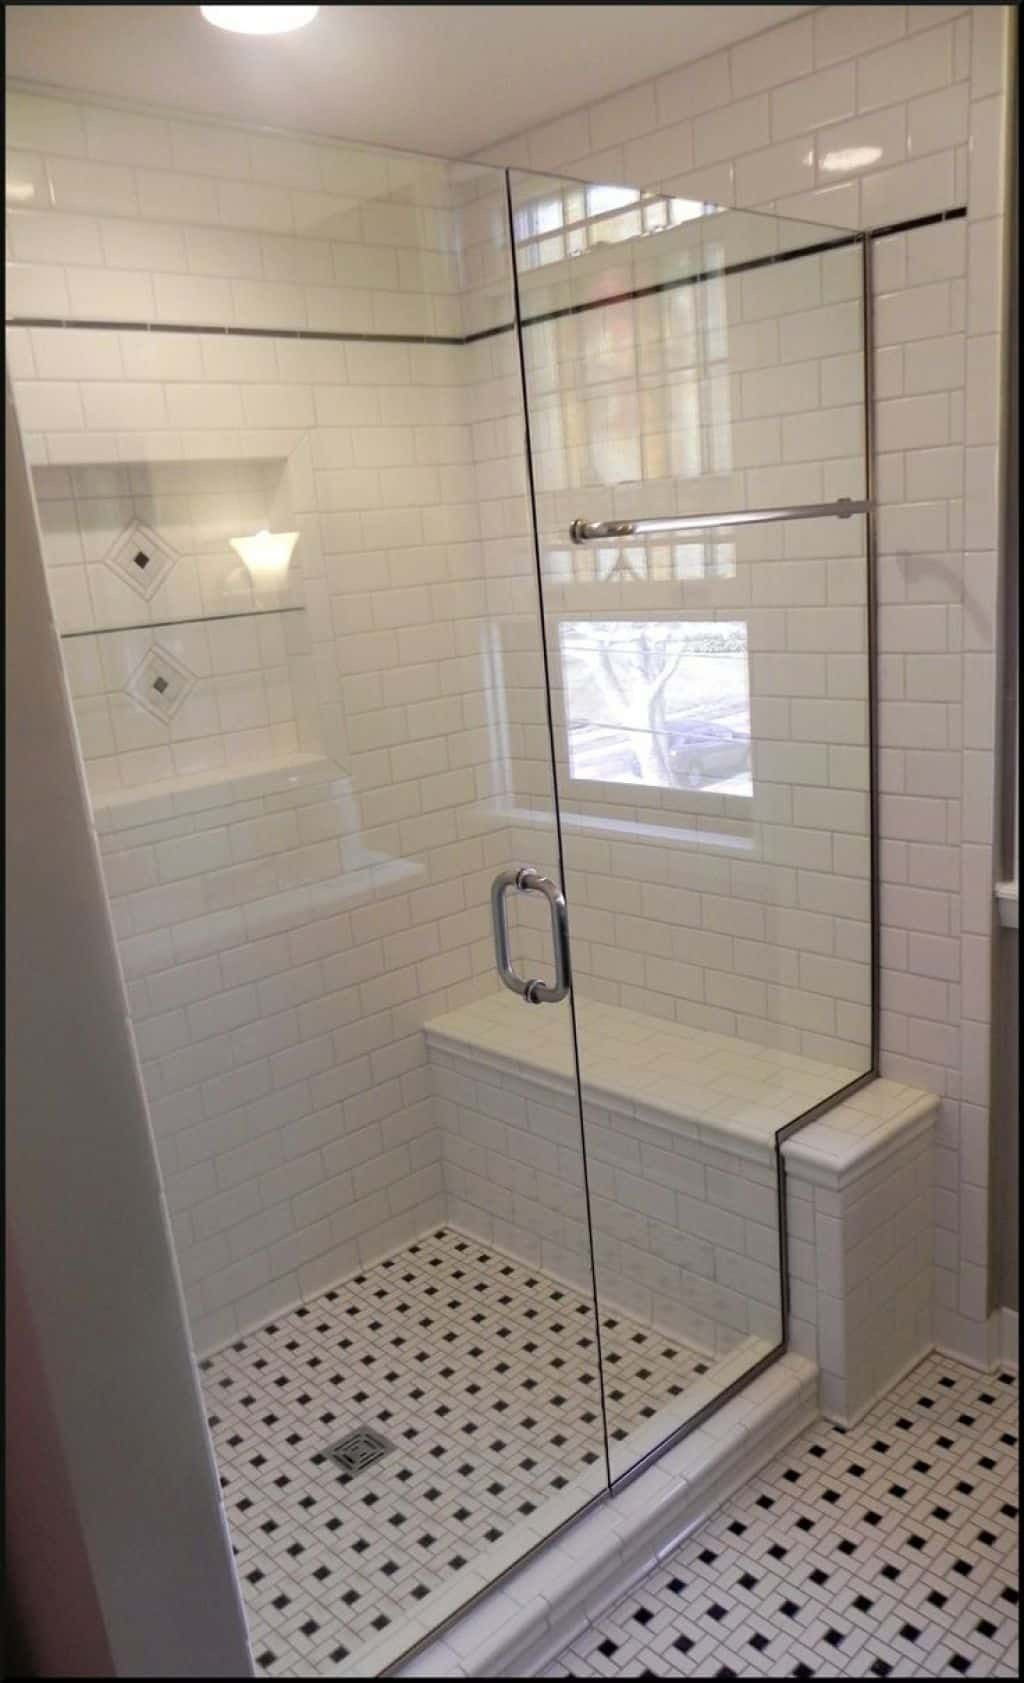 Shower stall with seat and subway tiles bathroom shower stalls with seats